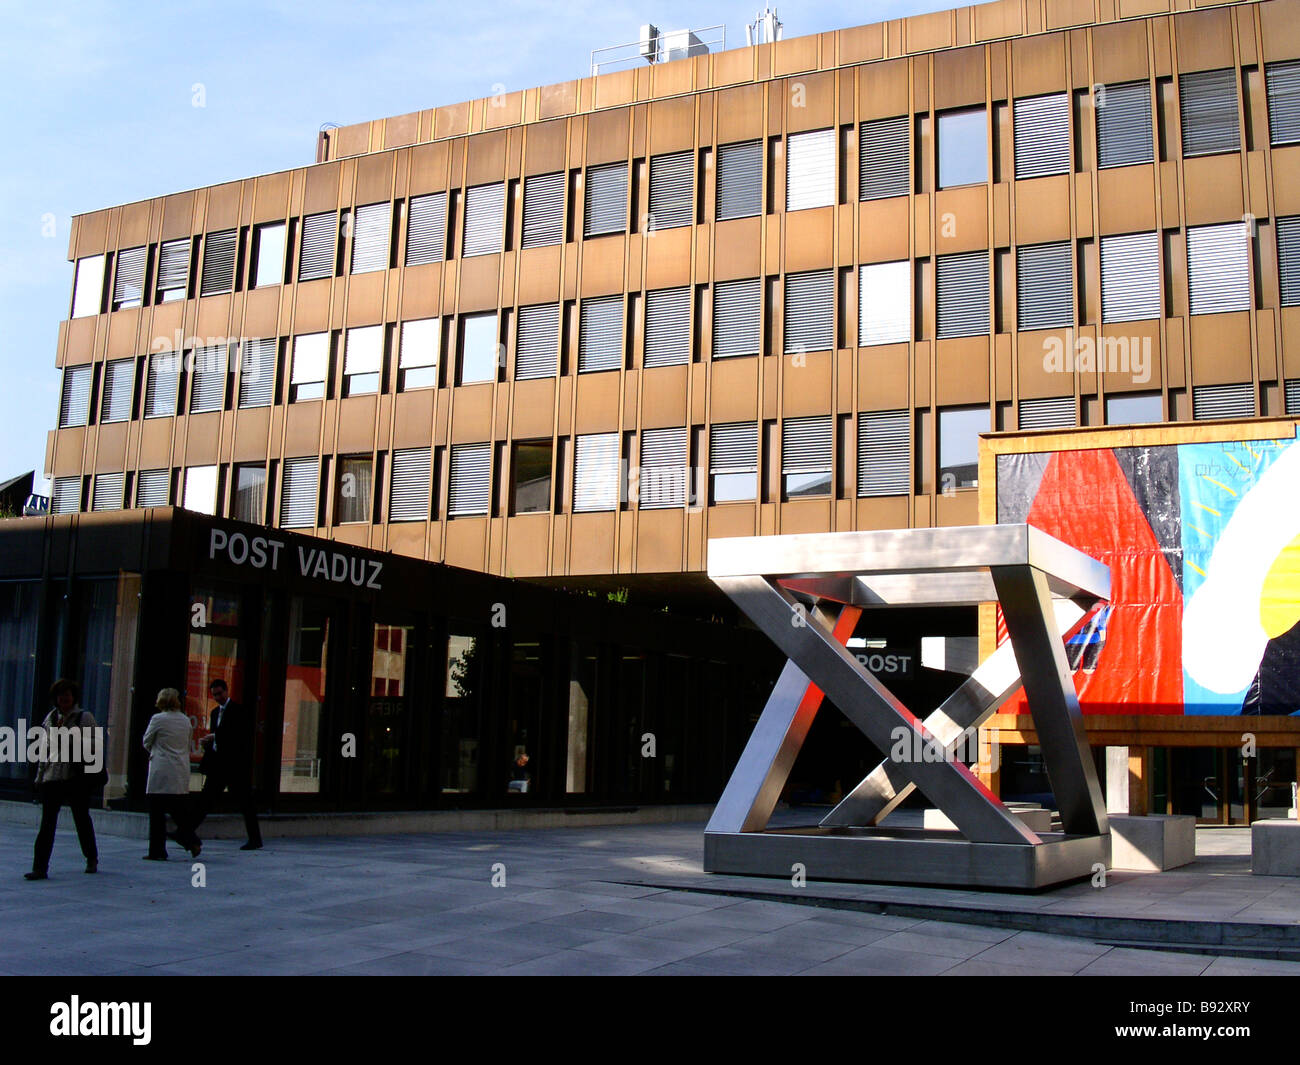 Li The Principality of Liechtenstein Capital Vaduz The Postoffice No third party rights available - Stock Image